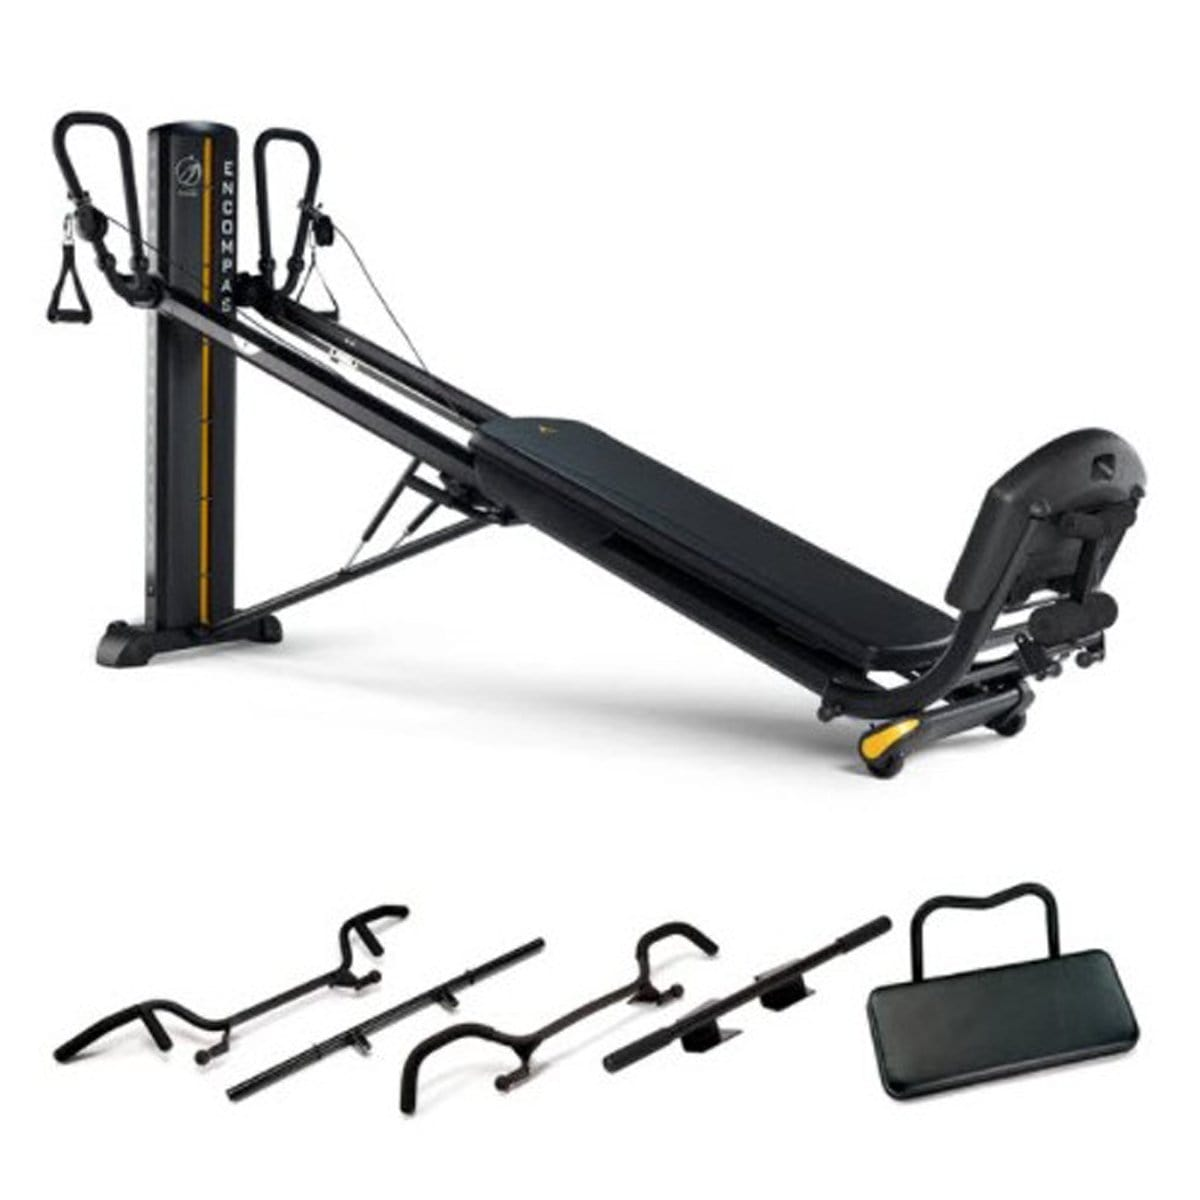 Total Gym ELEVATE Encompass Abdominal Core Machine Strength Package - Barbell Flex